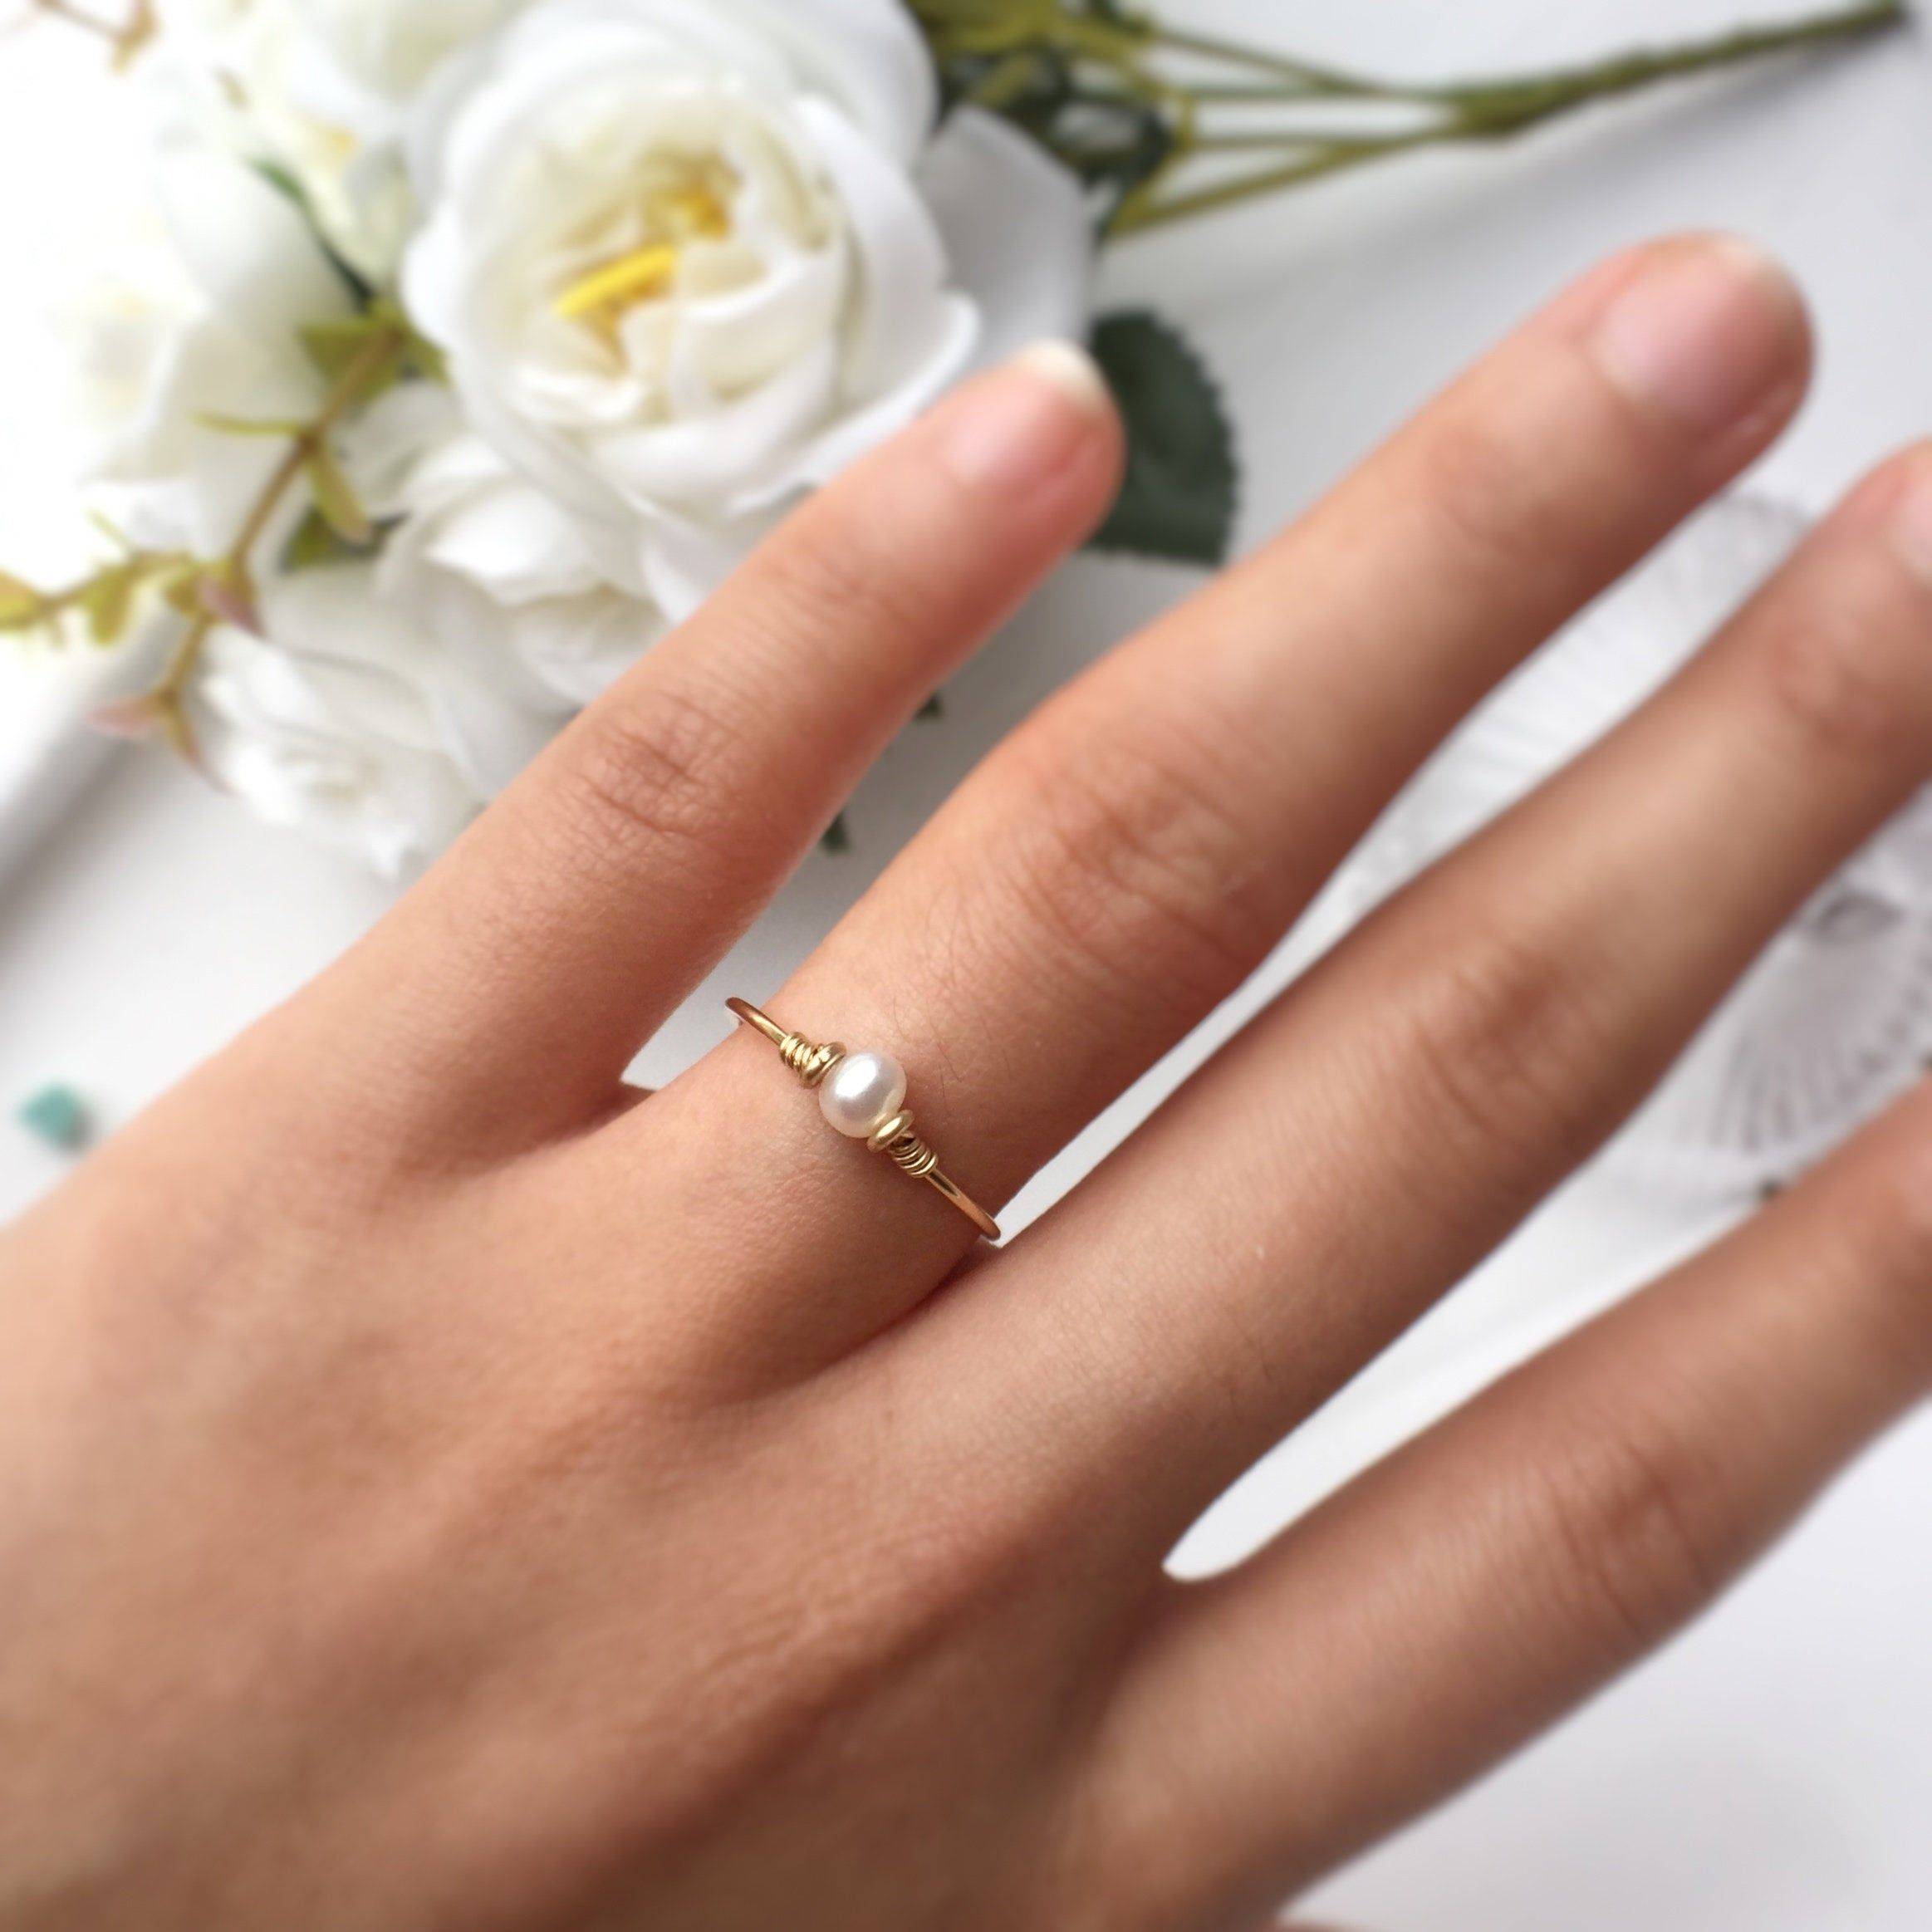 Gold Pearl Ring With Diamonds,9K Gold Ring,Engagement Ring,Classic Pearl Ring,Bridal Jewelry,14K Yellow Gold Pearl Ring,Birthday Ring